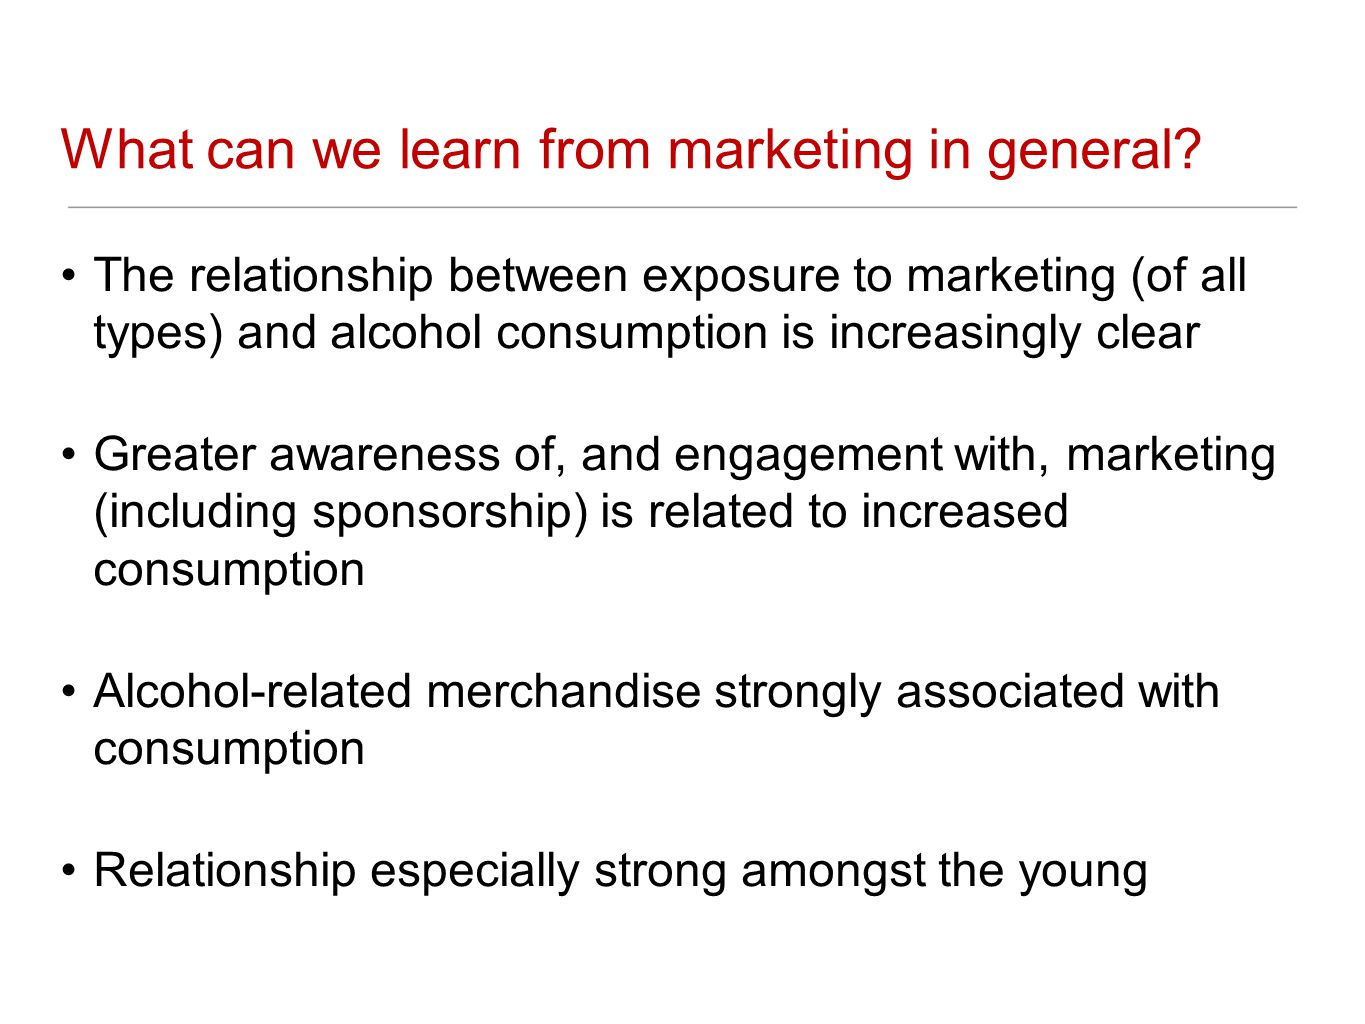 What can we learn from marketing in general? The relationship between exposure to marketing (of all types) and alcohol consumption is increasingly cle